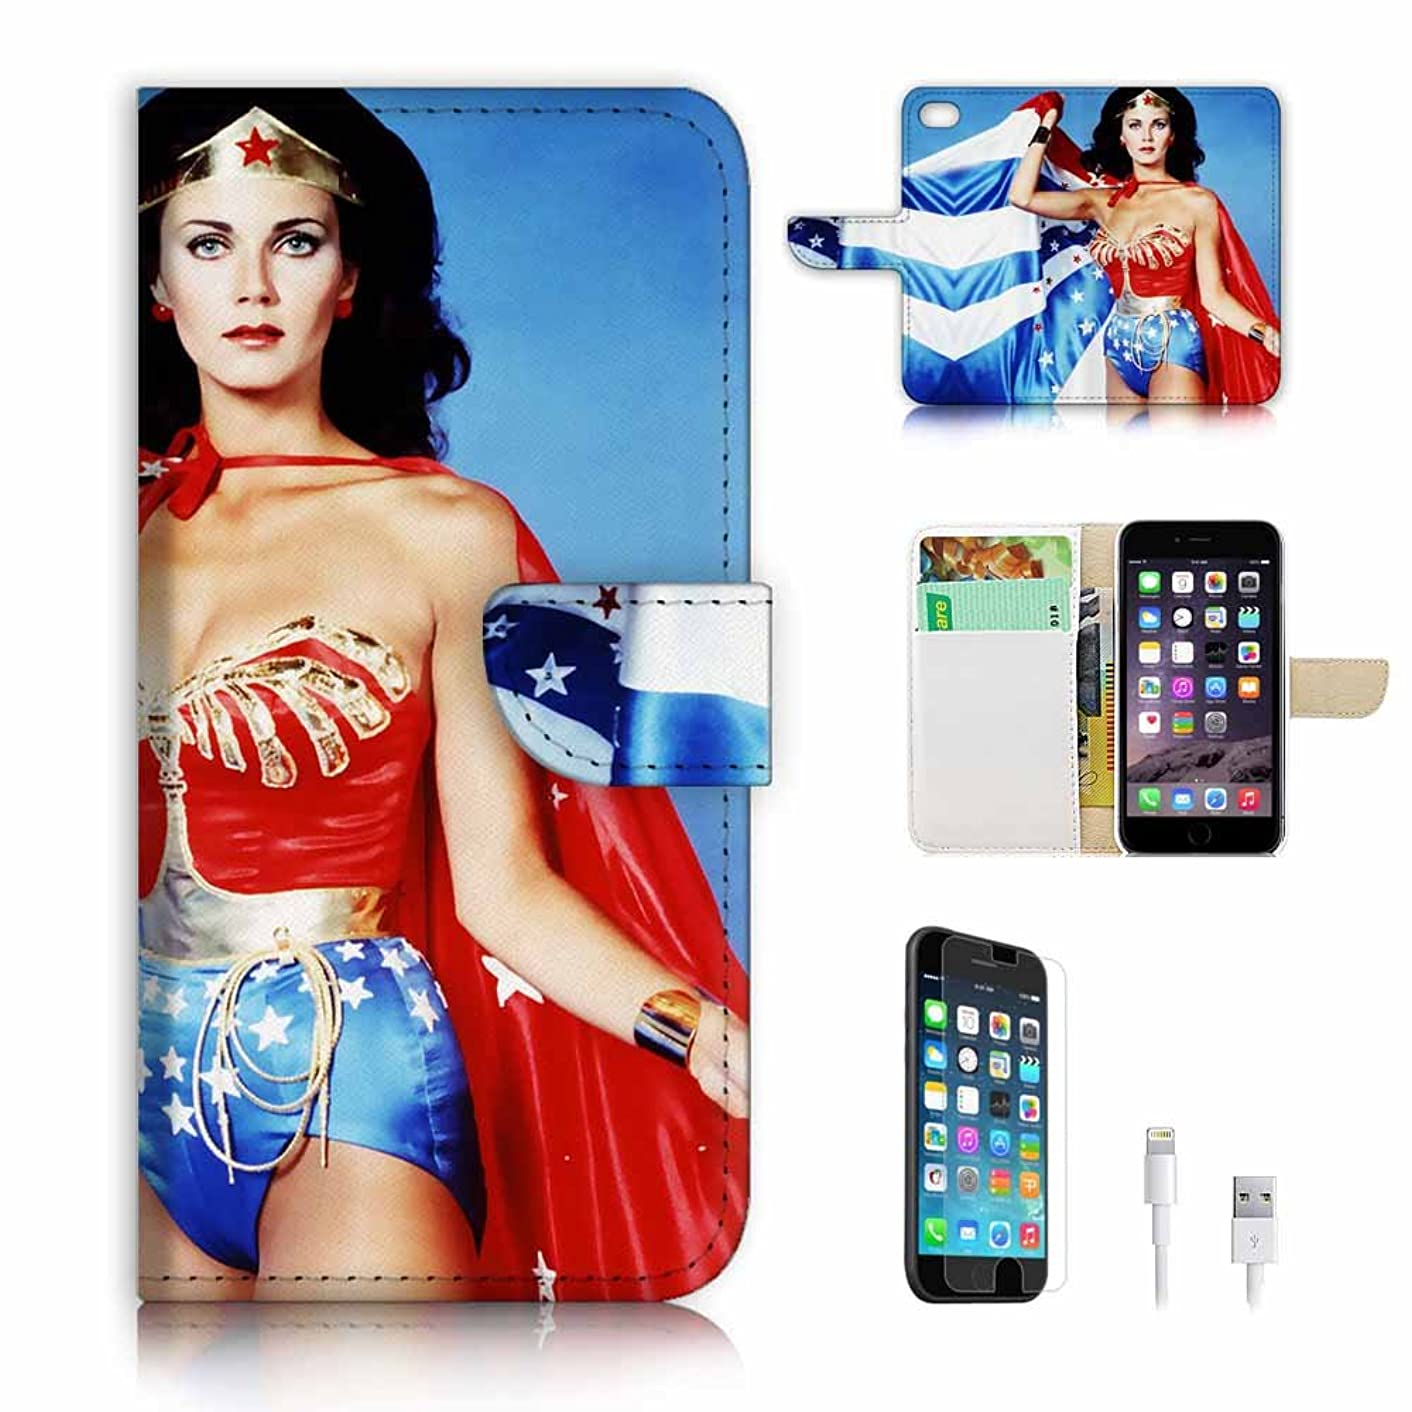 (For iPhone 8 Plus/iPhone 7 Plus) Flip Wallet Case Cover & Screen Protector & Charging Cable Bundle! A9009 Wonder Woman